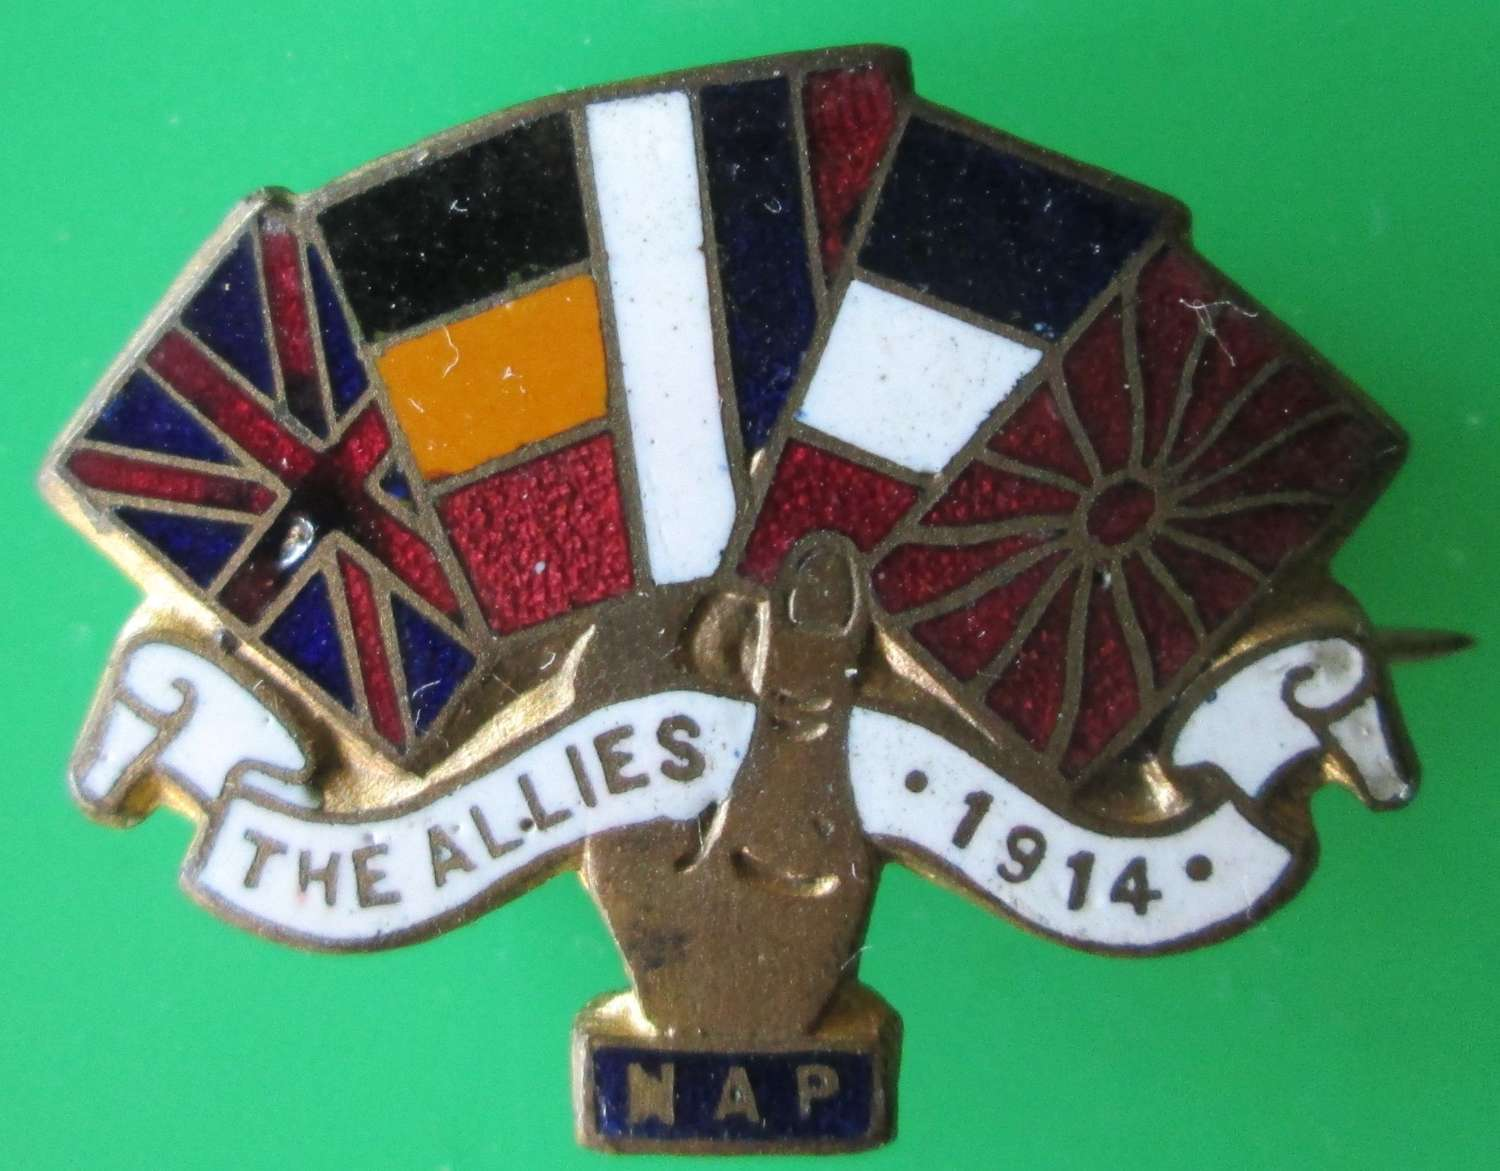 A 1914 ALLIED FLAGS PIN BROOCH